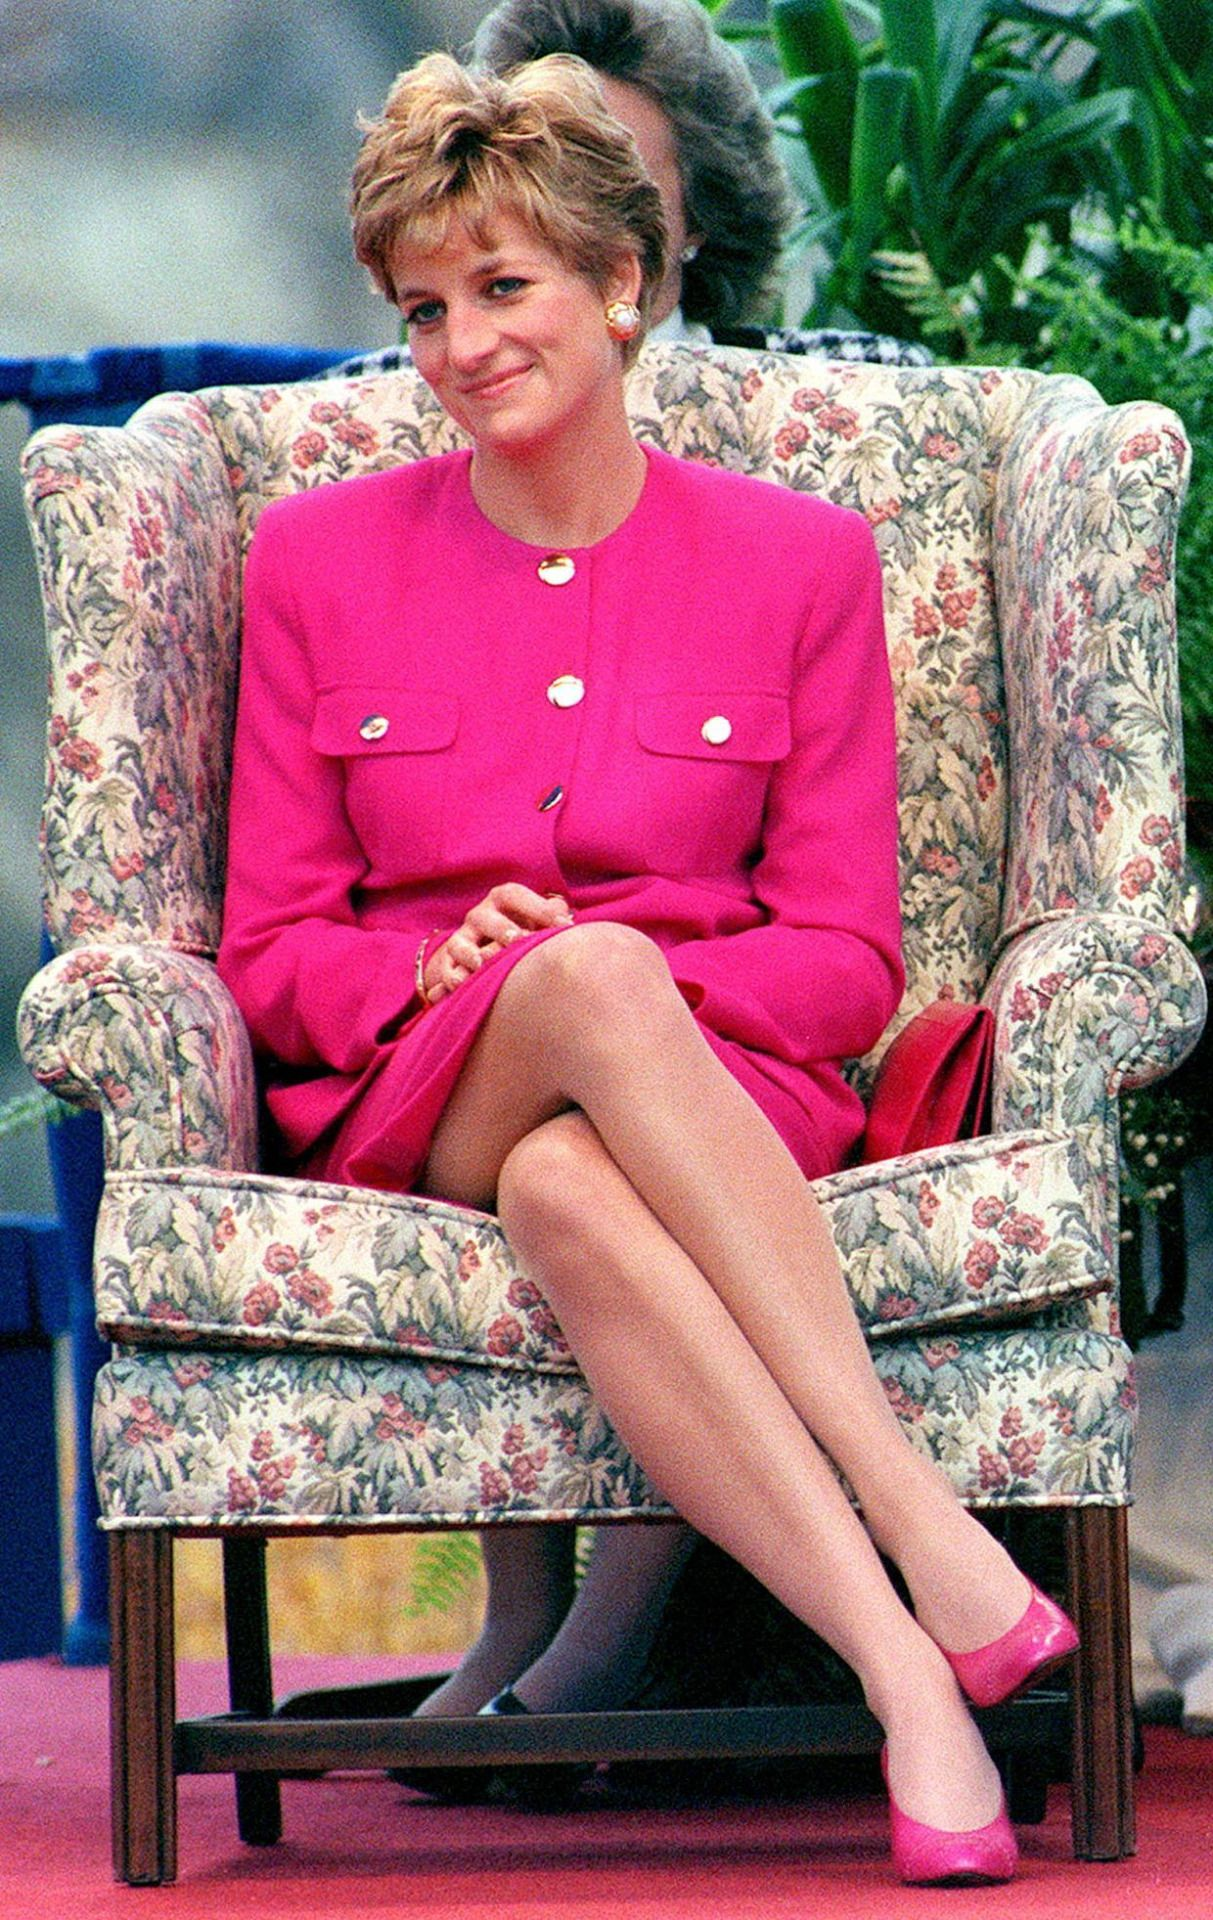 And the sexiest royal legs award goes to… | Princess Diana | Pinterest